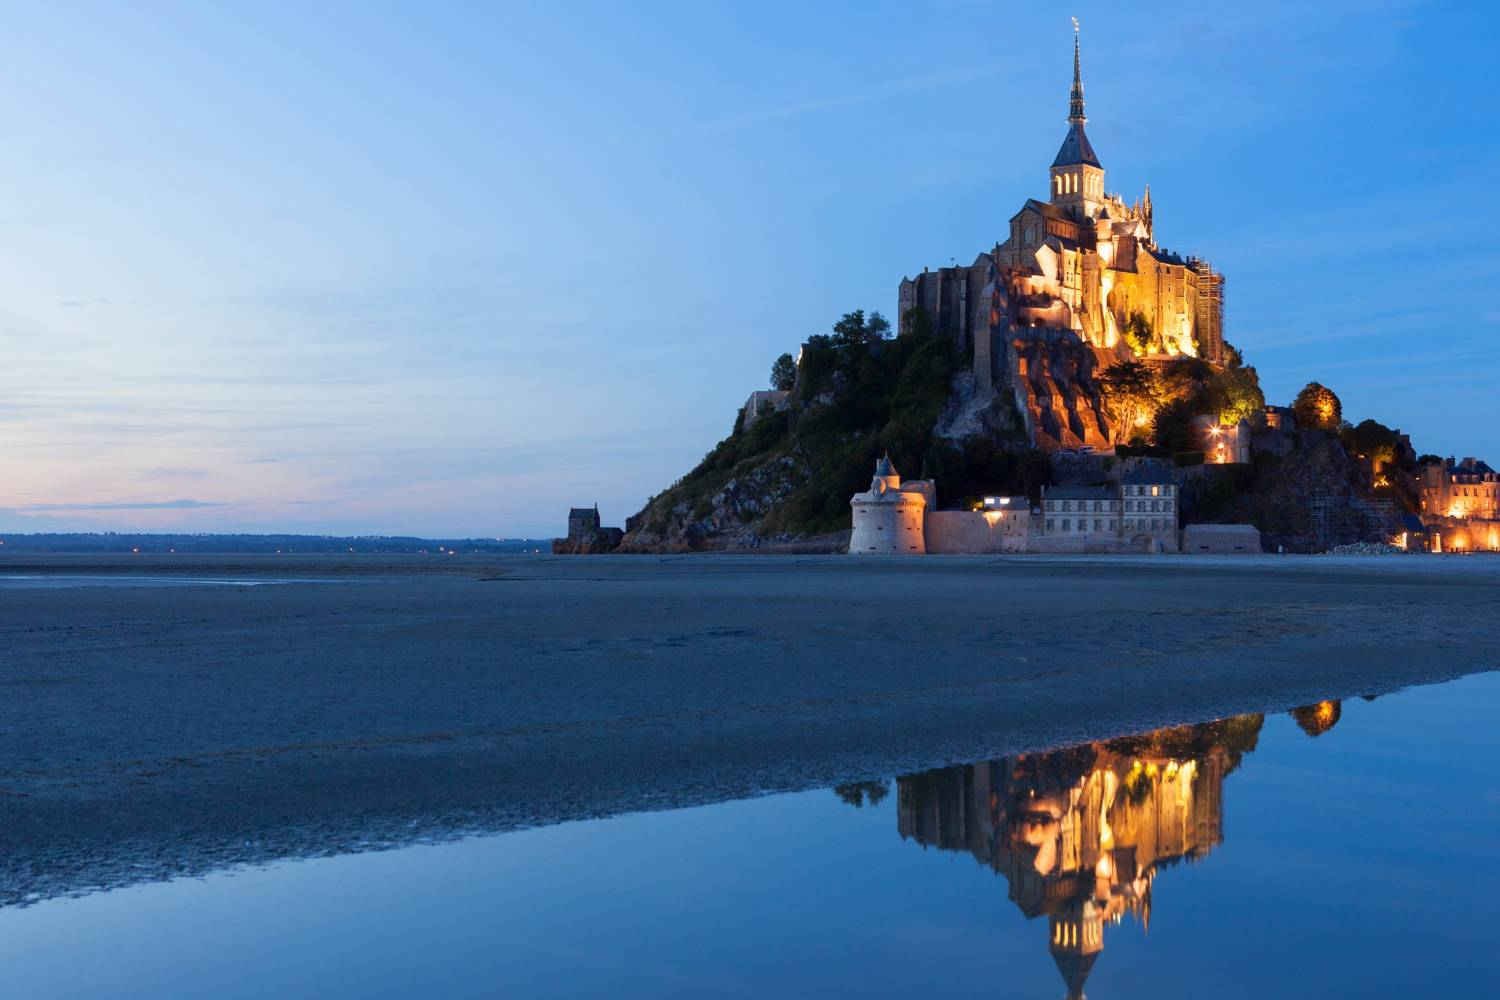 Enjoy a private chef after an amazing day in Normandy - Take a Chef